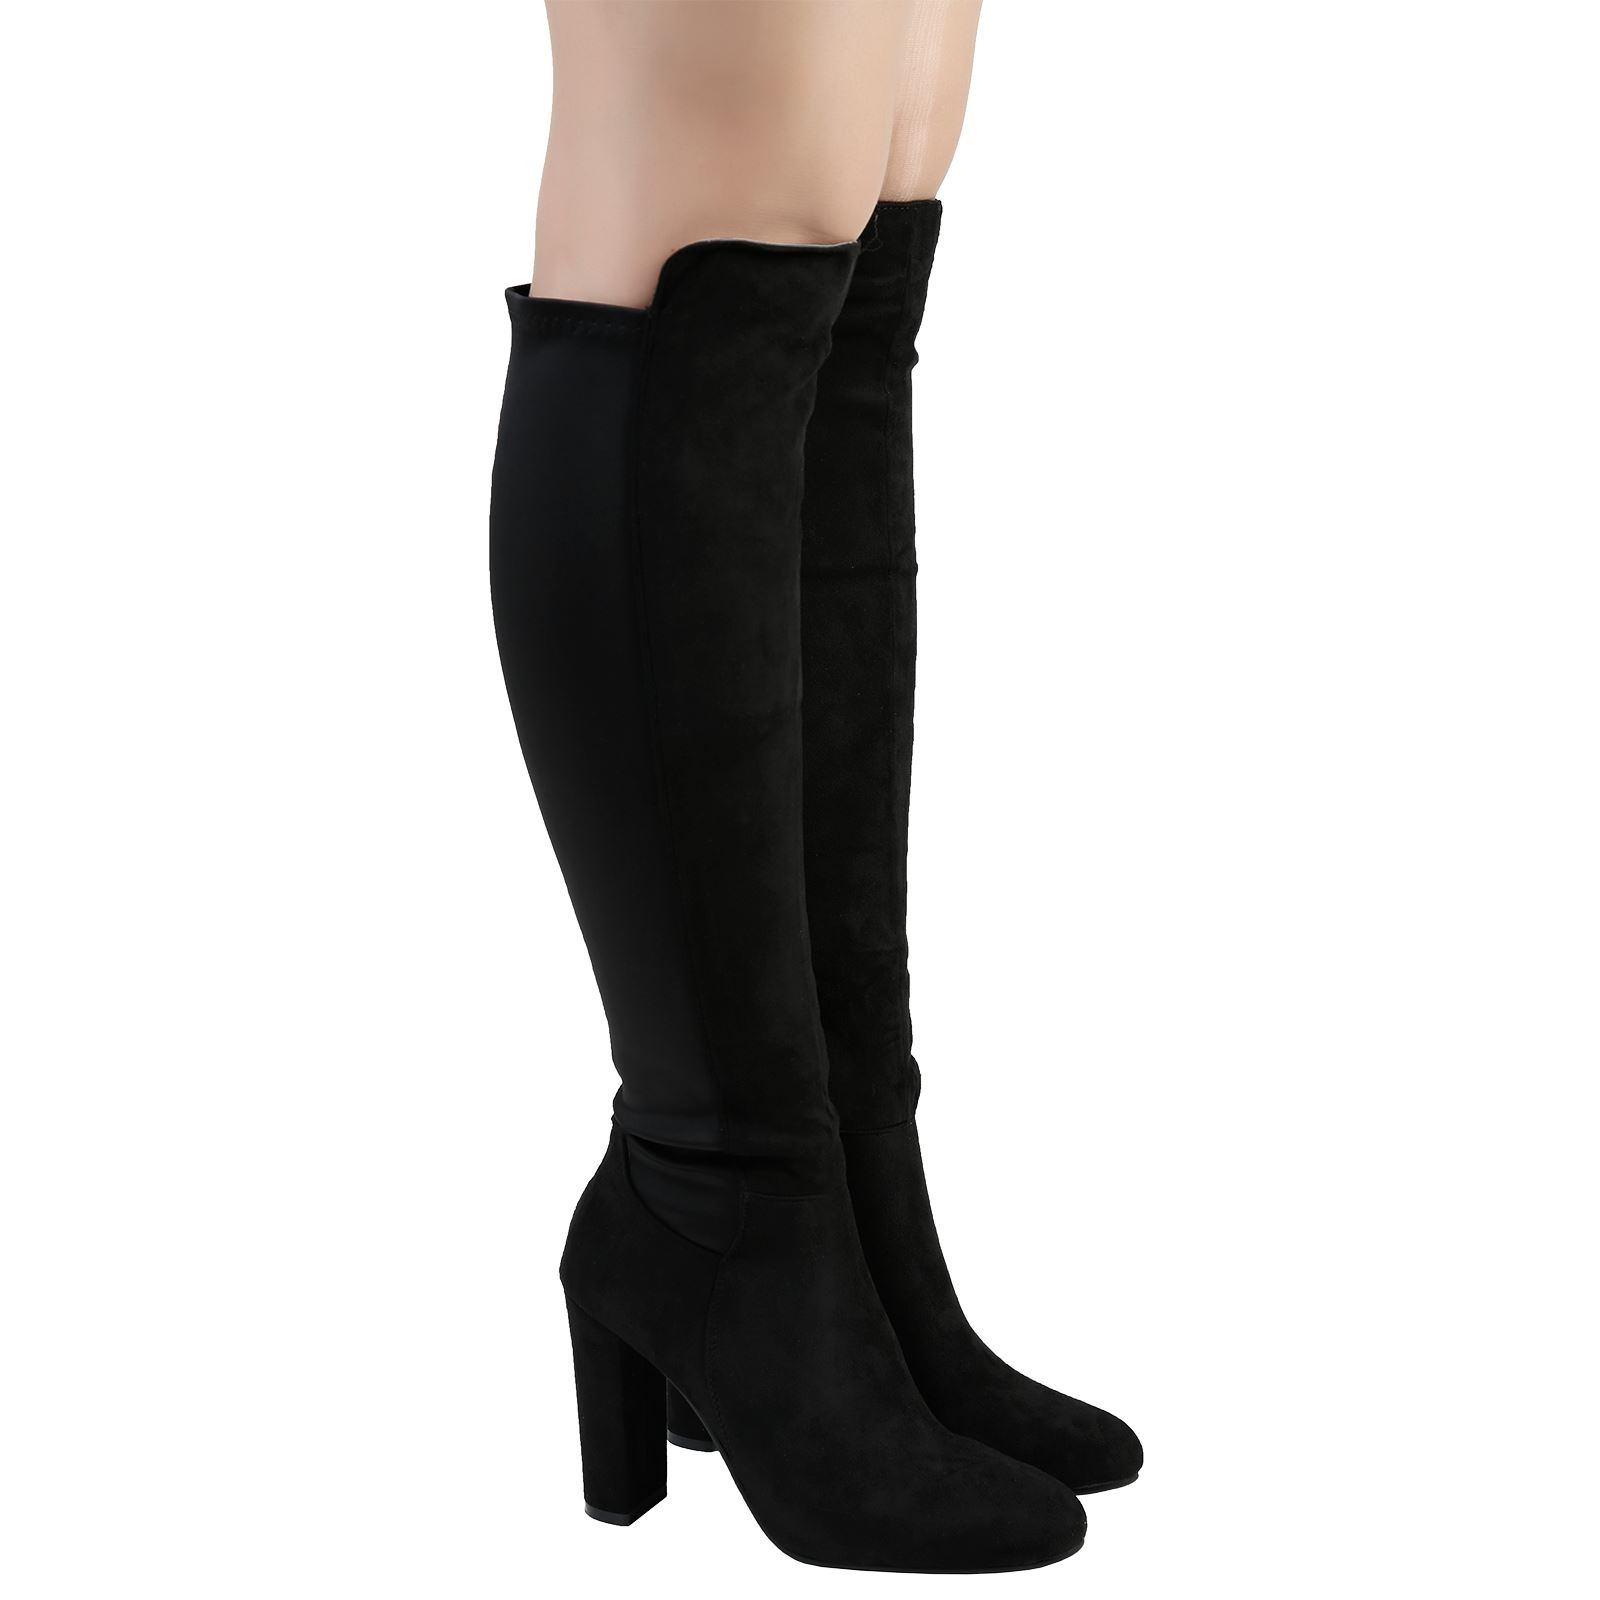 a204e1d2c04 Lola Womens Mid High Heels Stretch Knee High Boots Ladies Shoes ...